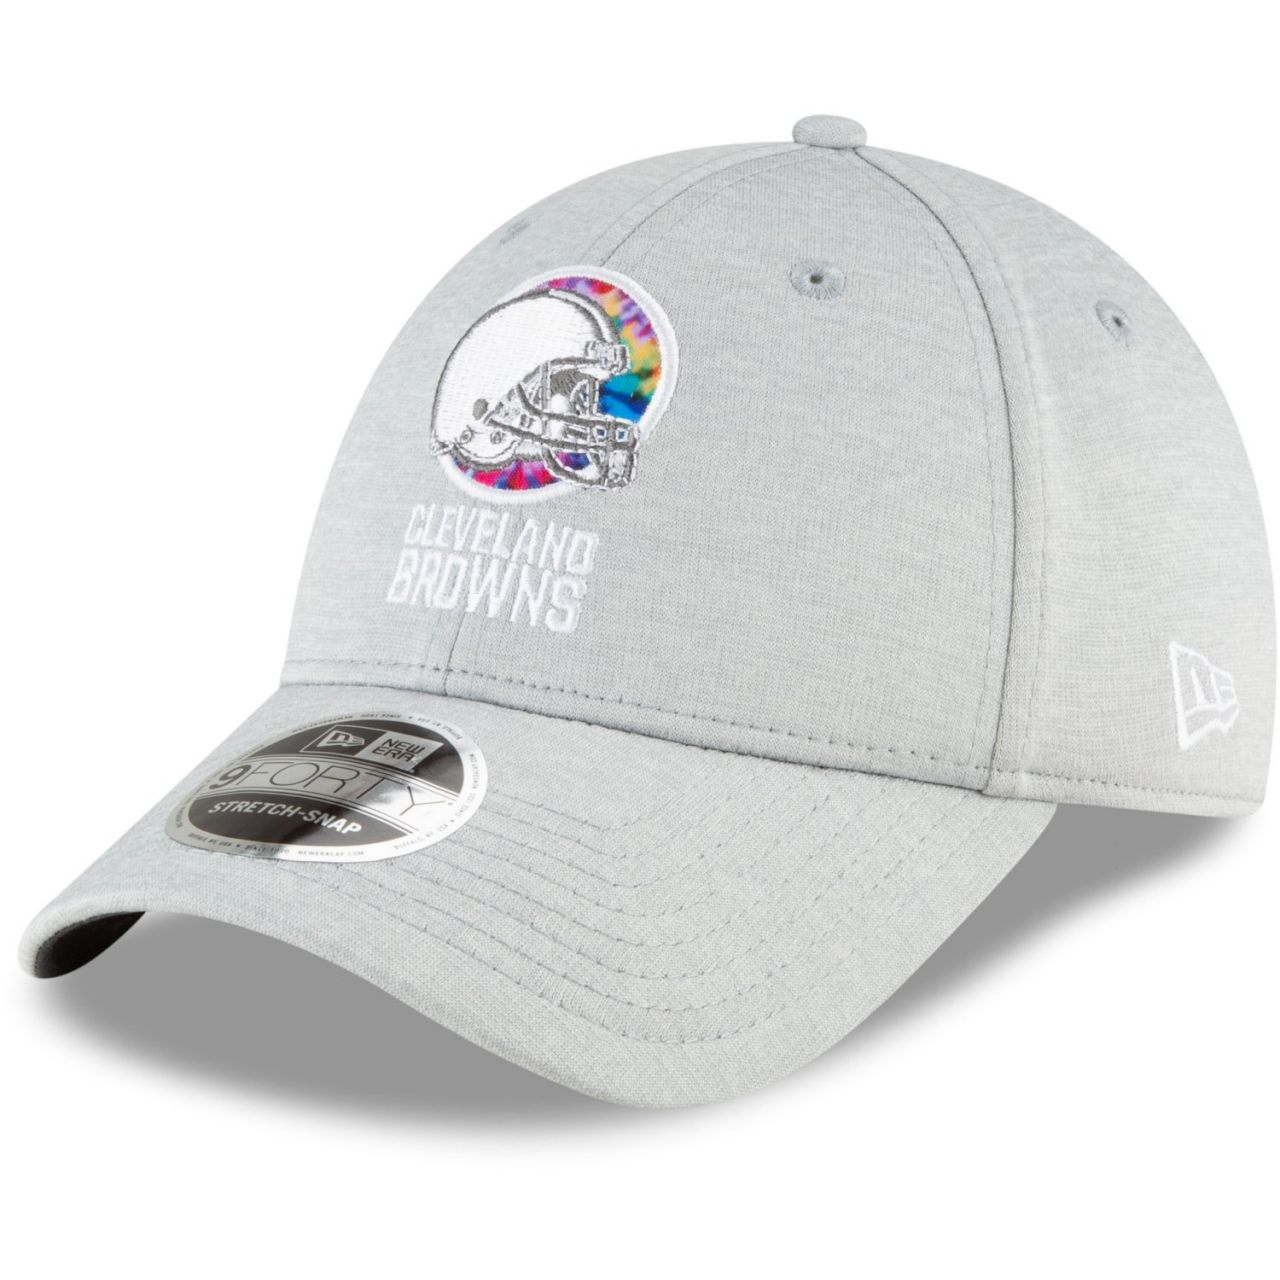 amfoo - New Era 9FORTY Stretch Cap - CRUCIAL CATCH Cleveland Browns